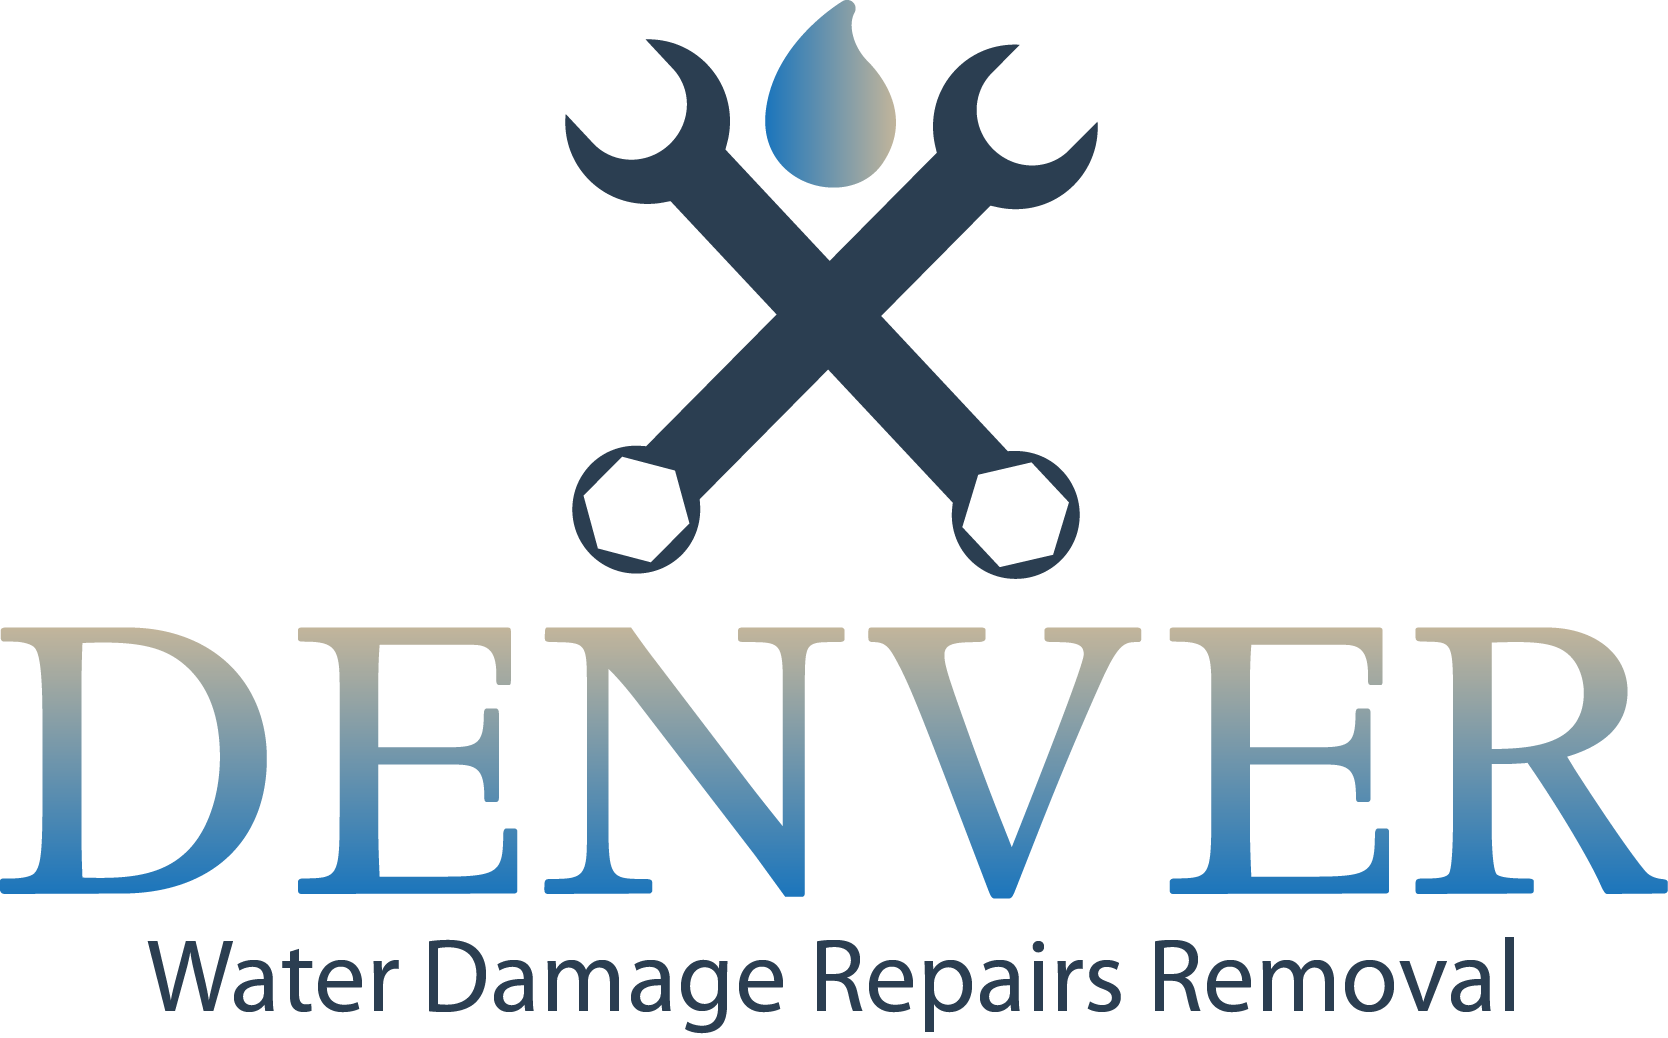 5 Best Water Damage Restoration Tips Denver Lakewood Colorado